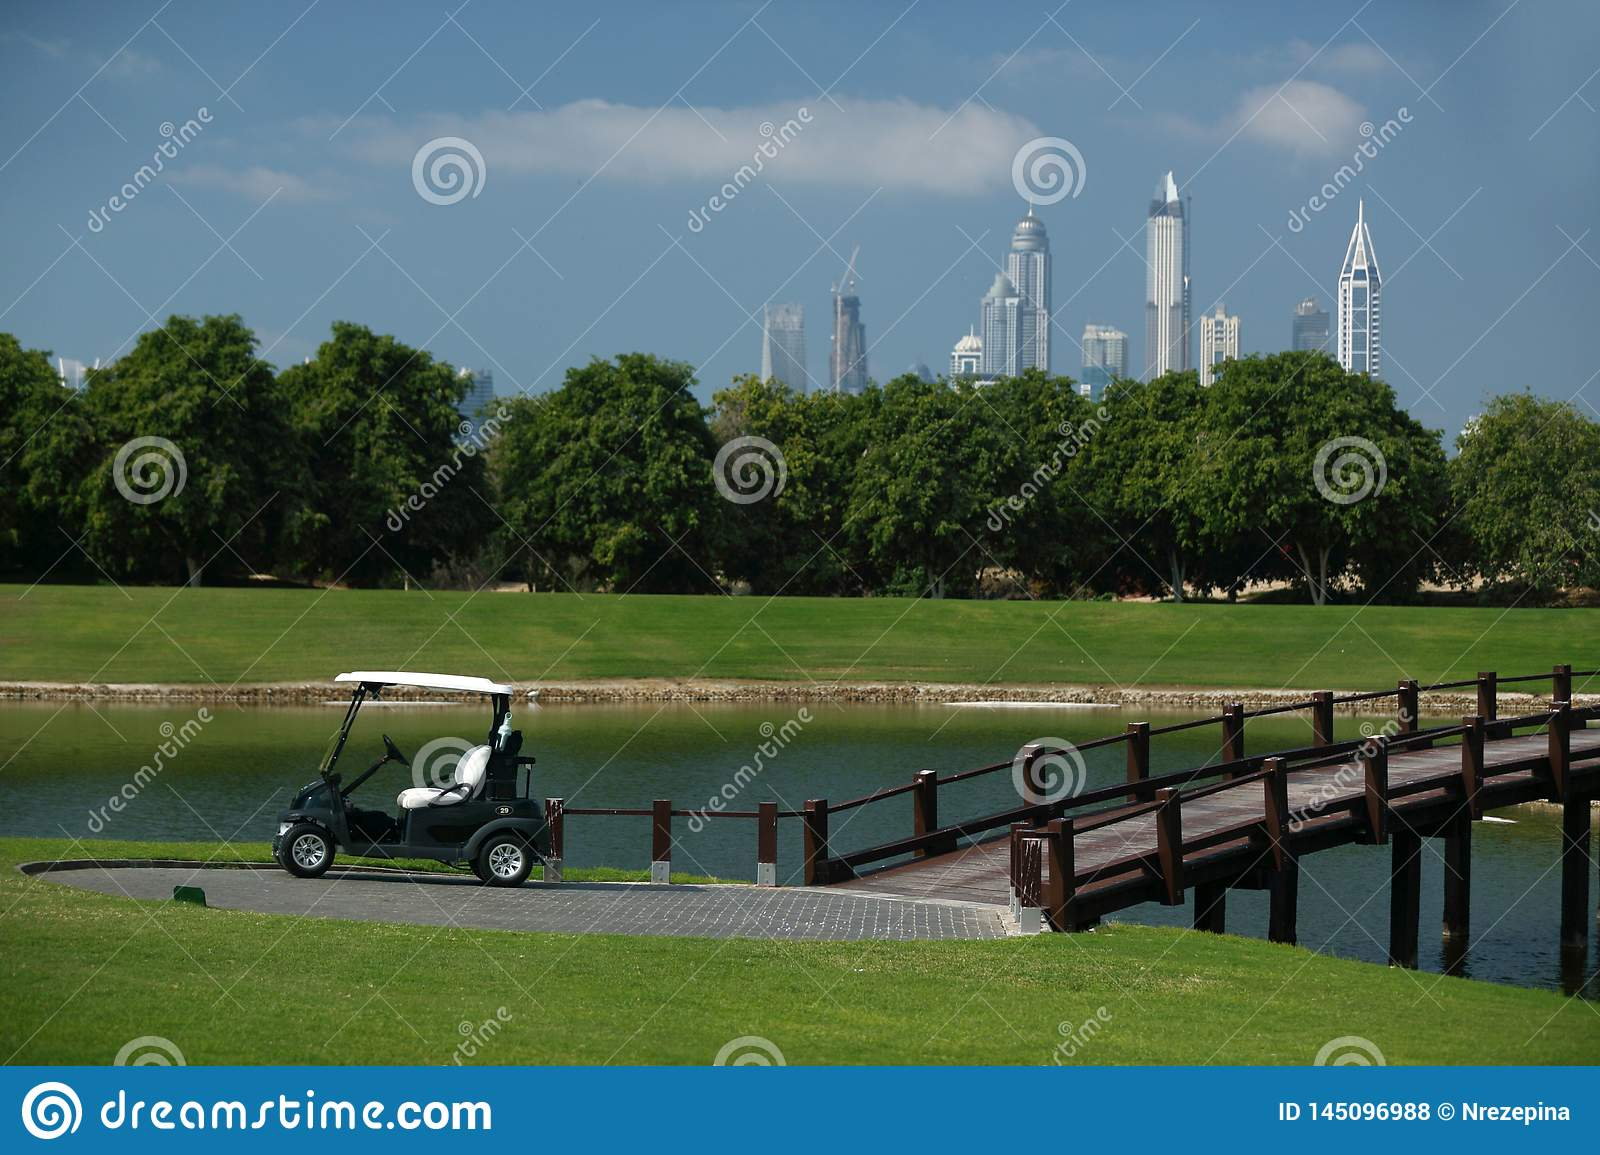 Golf course in Dubai with palm trees and skyscrapers in the background